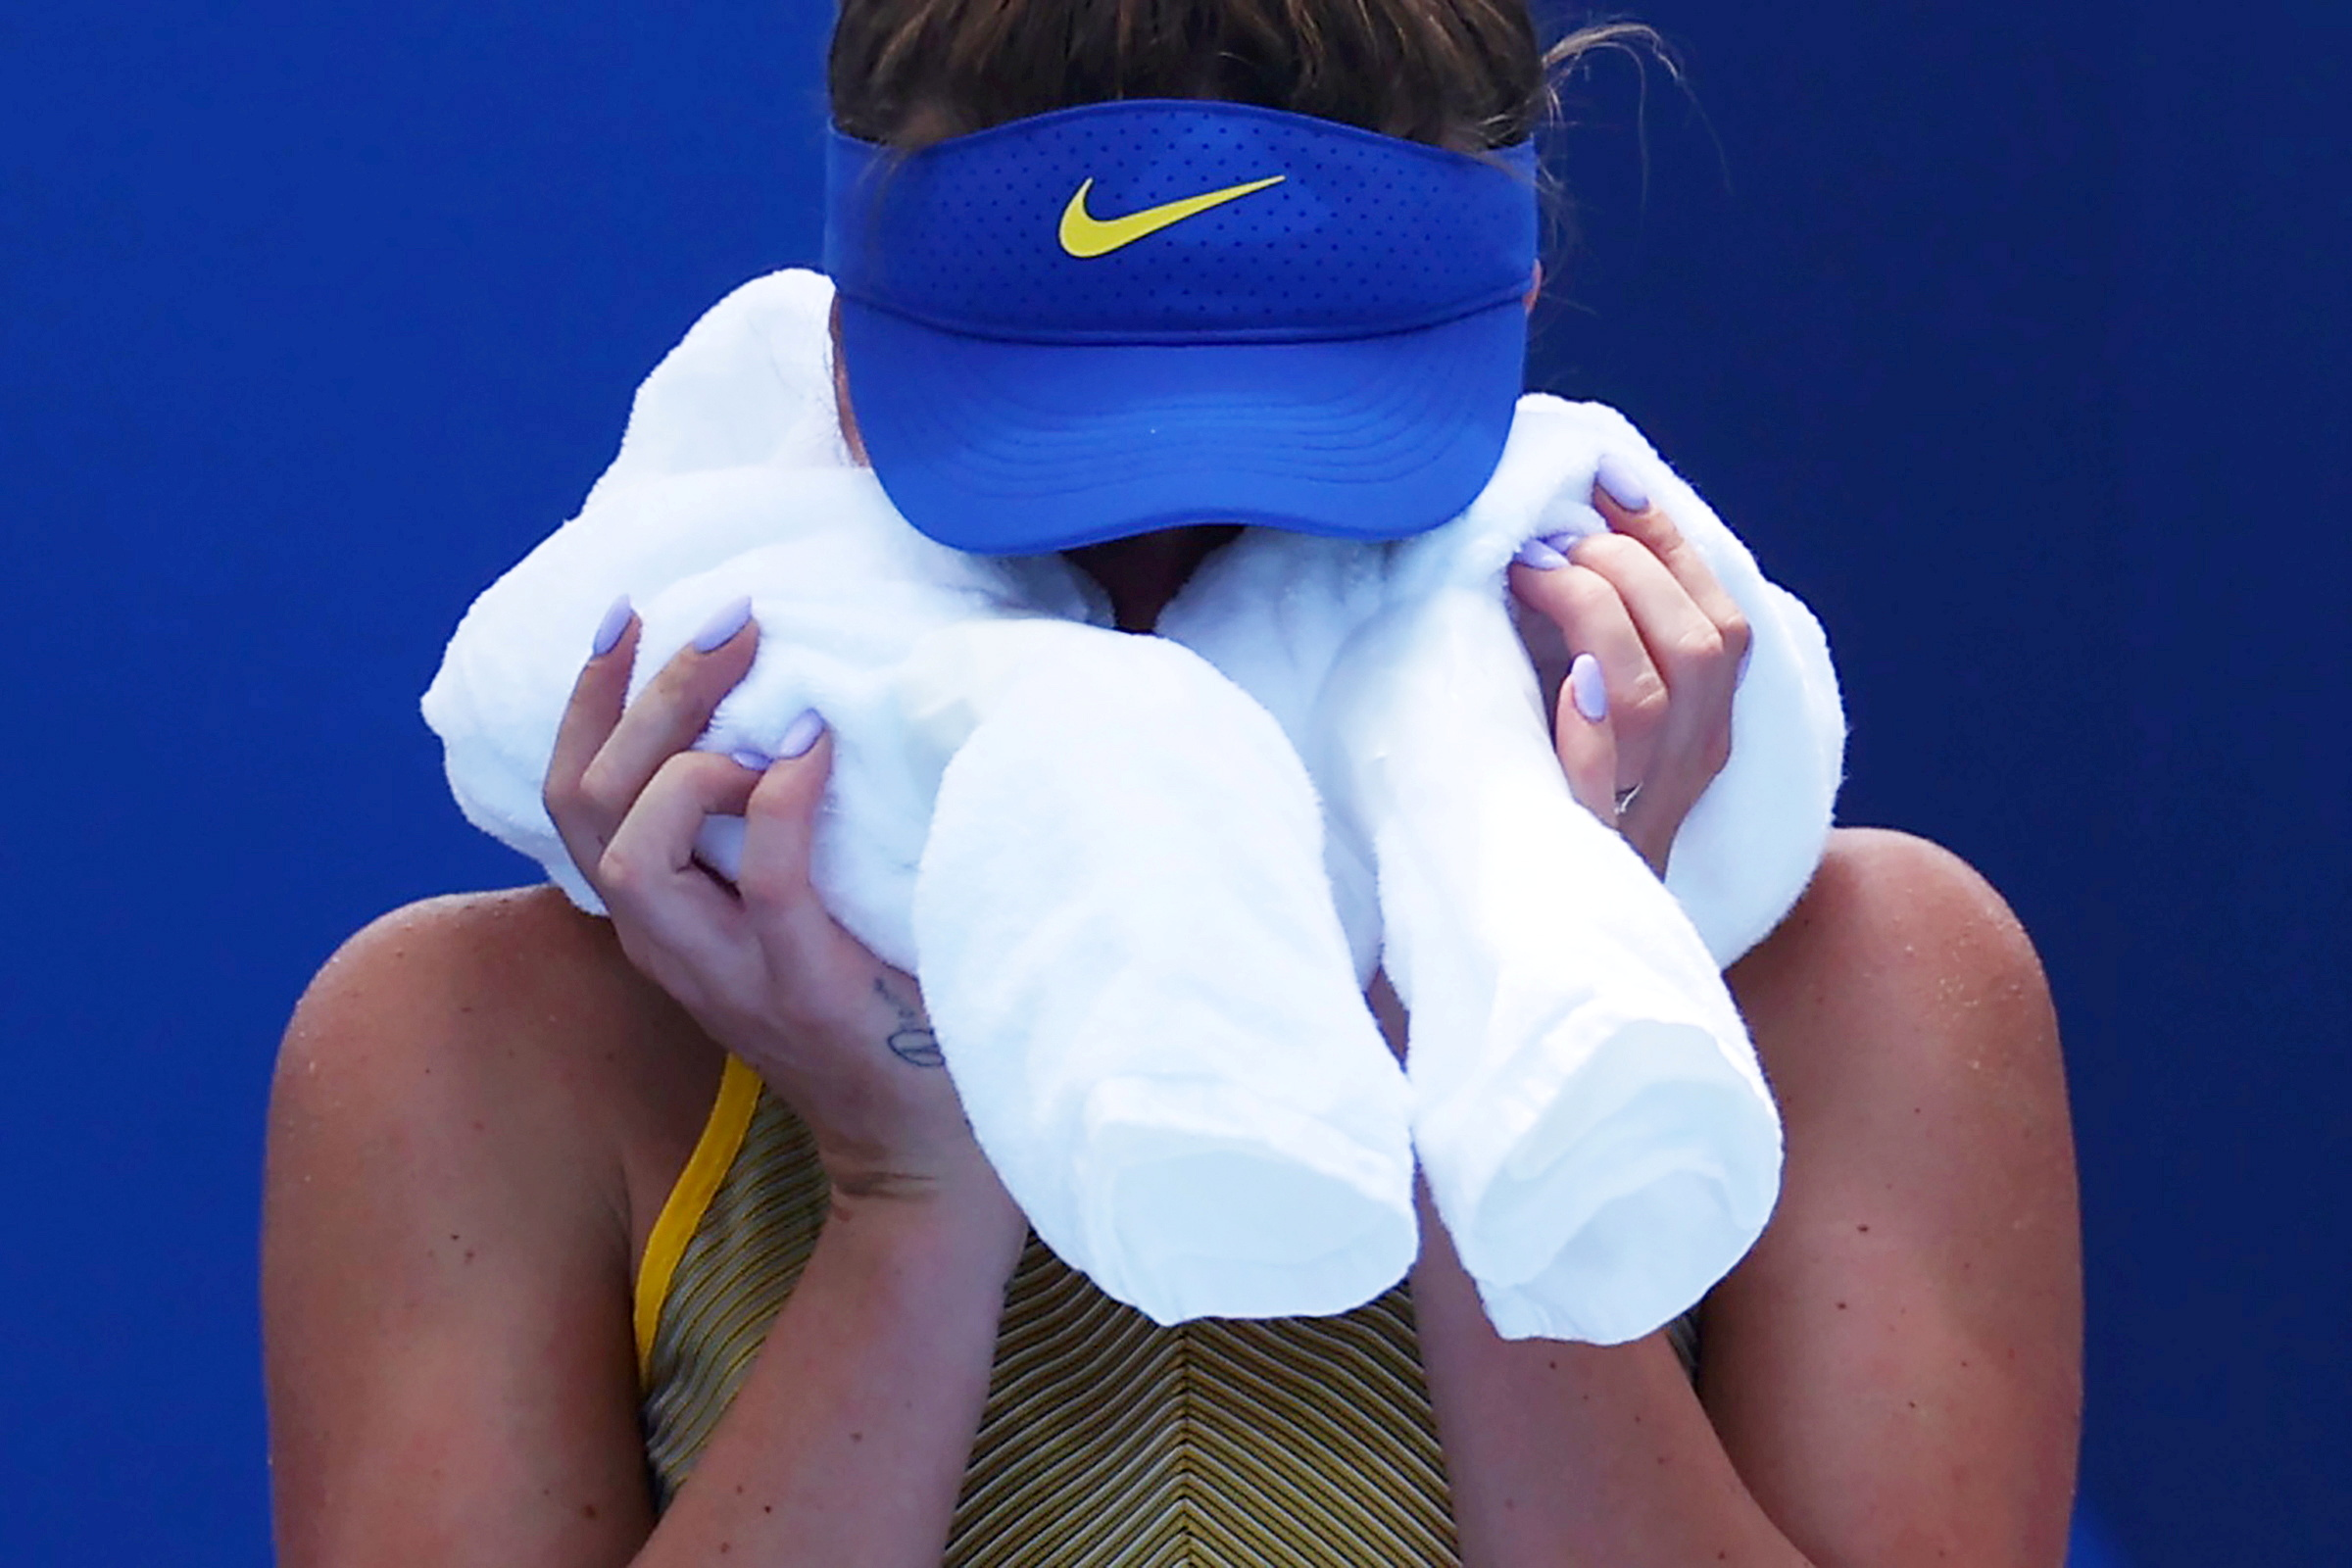 Tokyo 2020 Olympics - Tennis - Women's Singles - Quarterfinal - Ariake Tennis Park - Tokyo, Japan - July 28, 2021. Elina Svitolina of Ukraine cools off during her quarterfinal match against Camila Giorgi of Italy REUTERS/Edgar Su     TPX IMAGES OF THE DAY